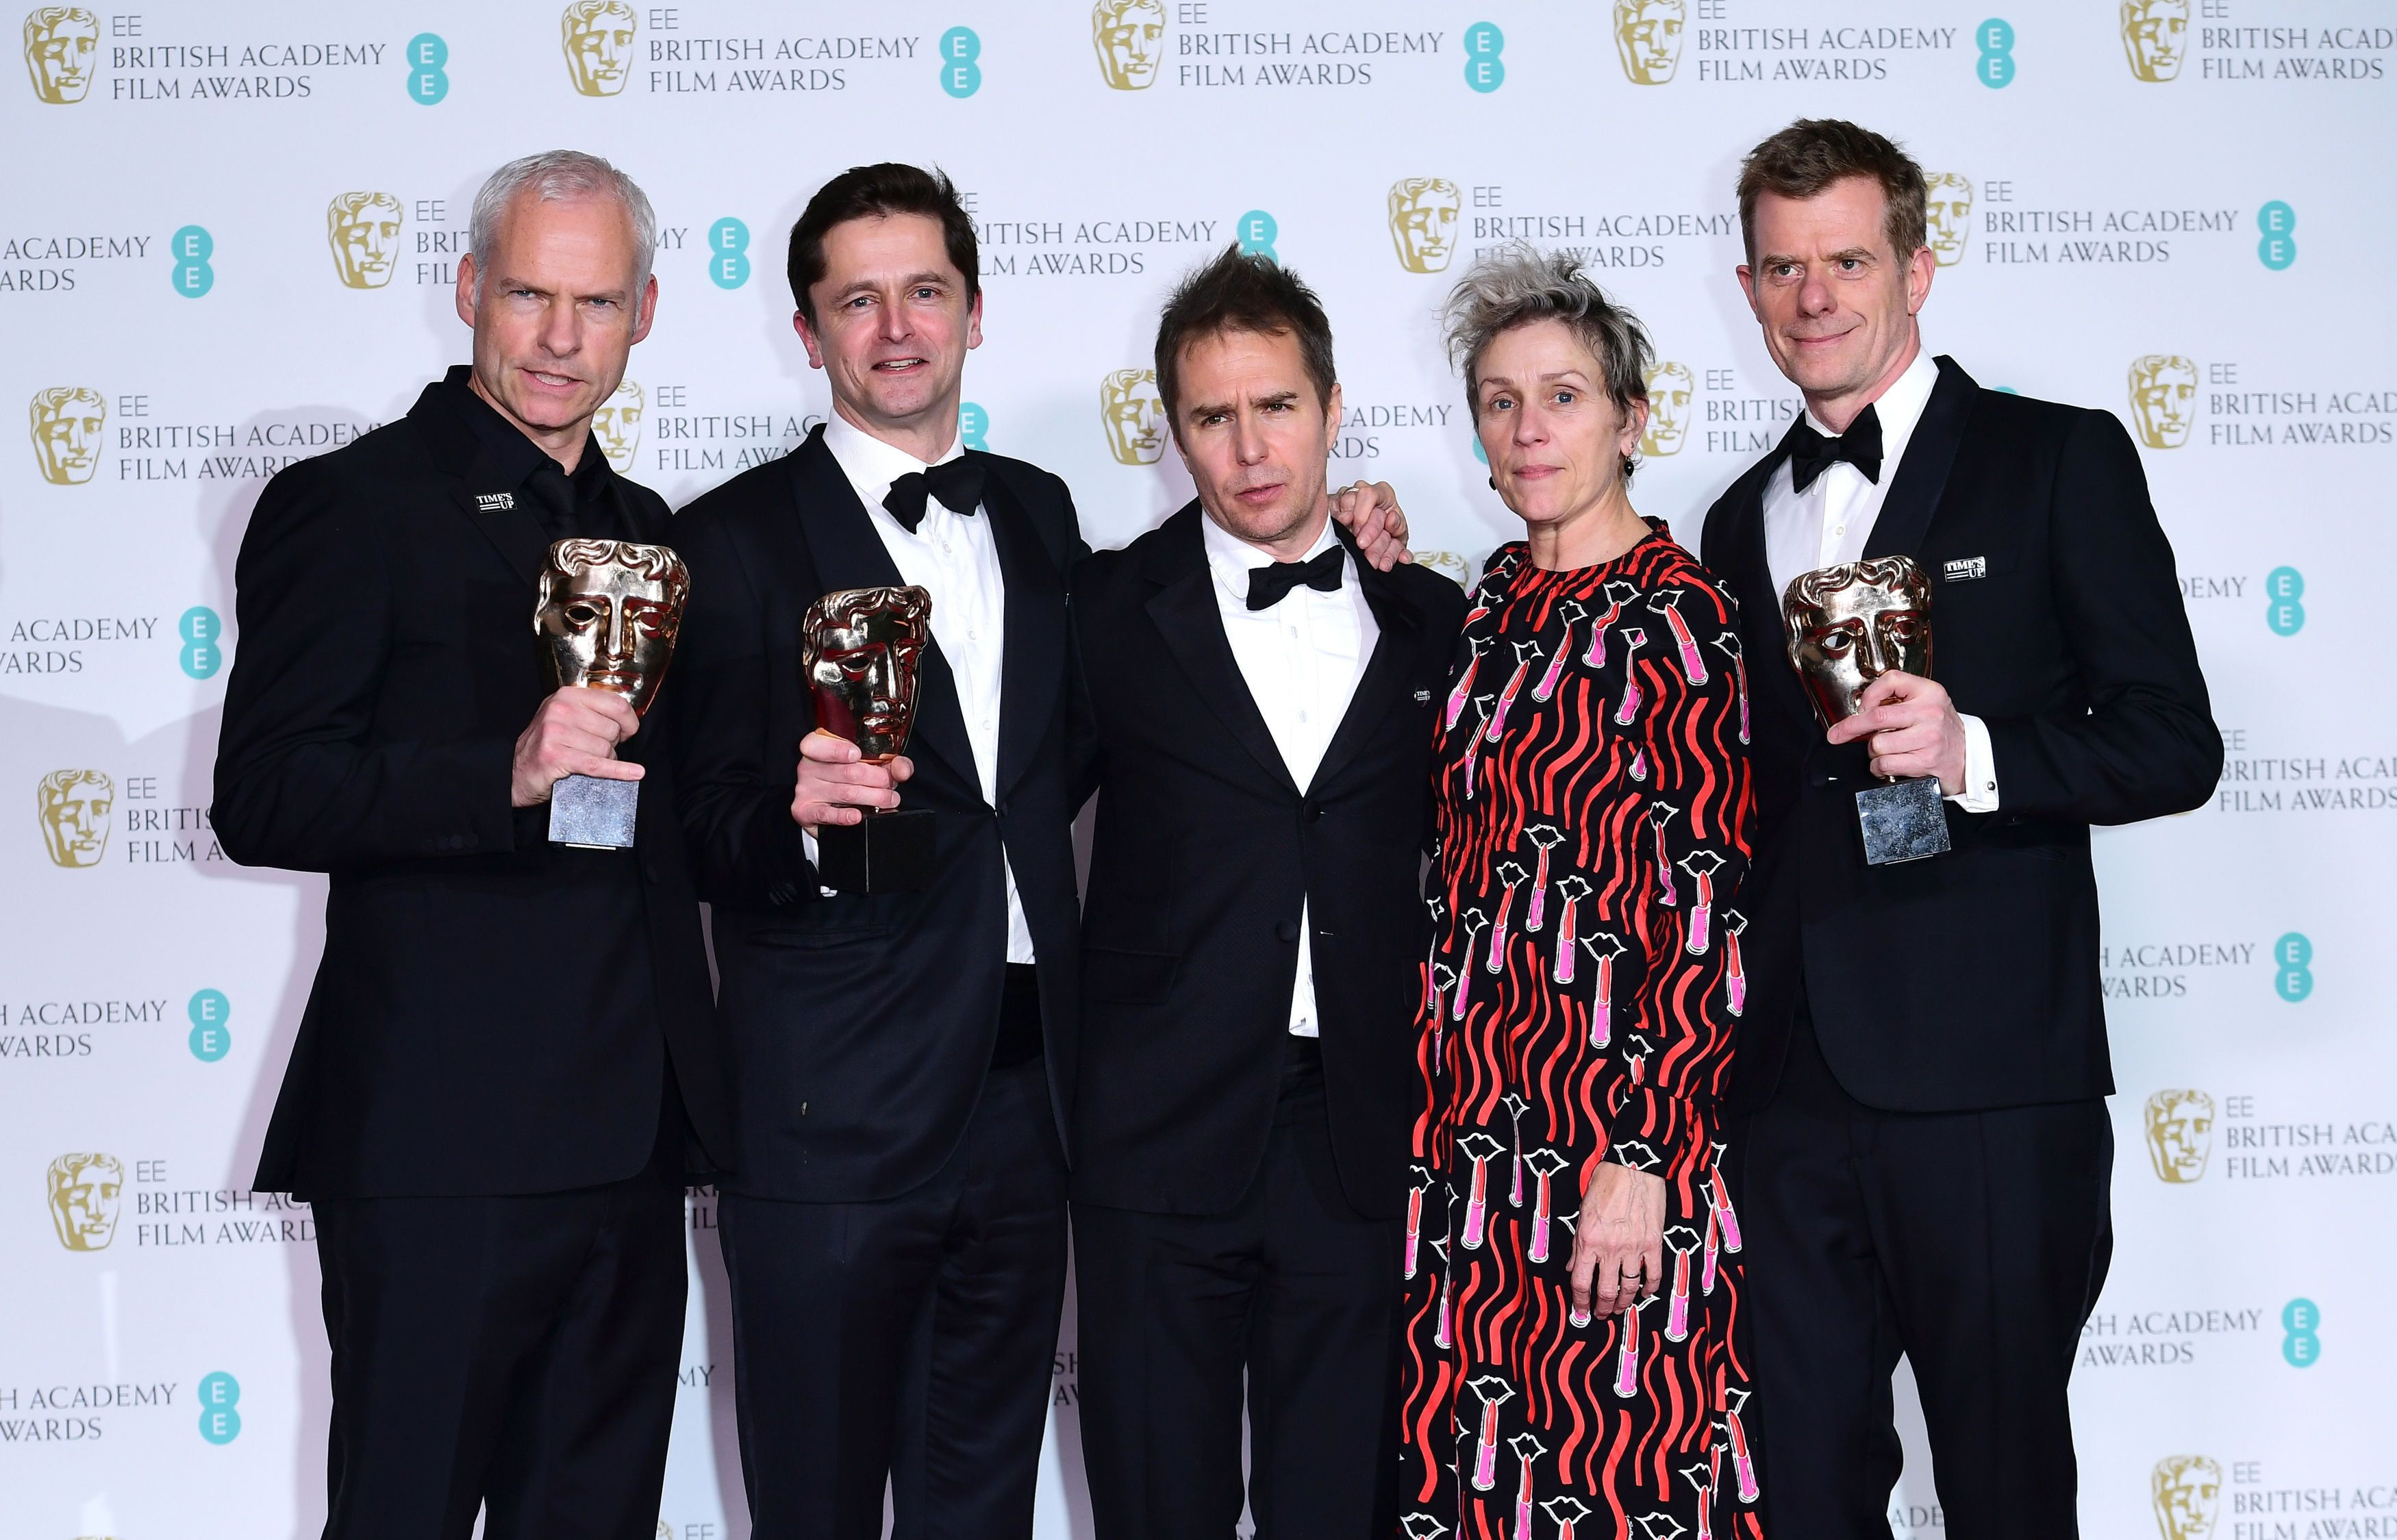 'Three Billboards' Triumphs At The Baftas - See The Full Winners List